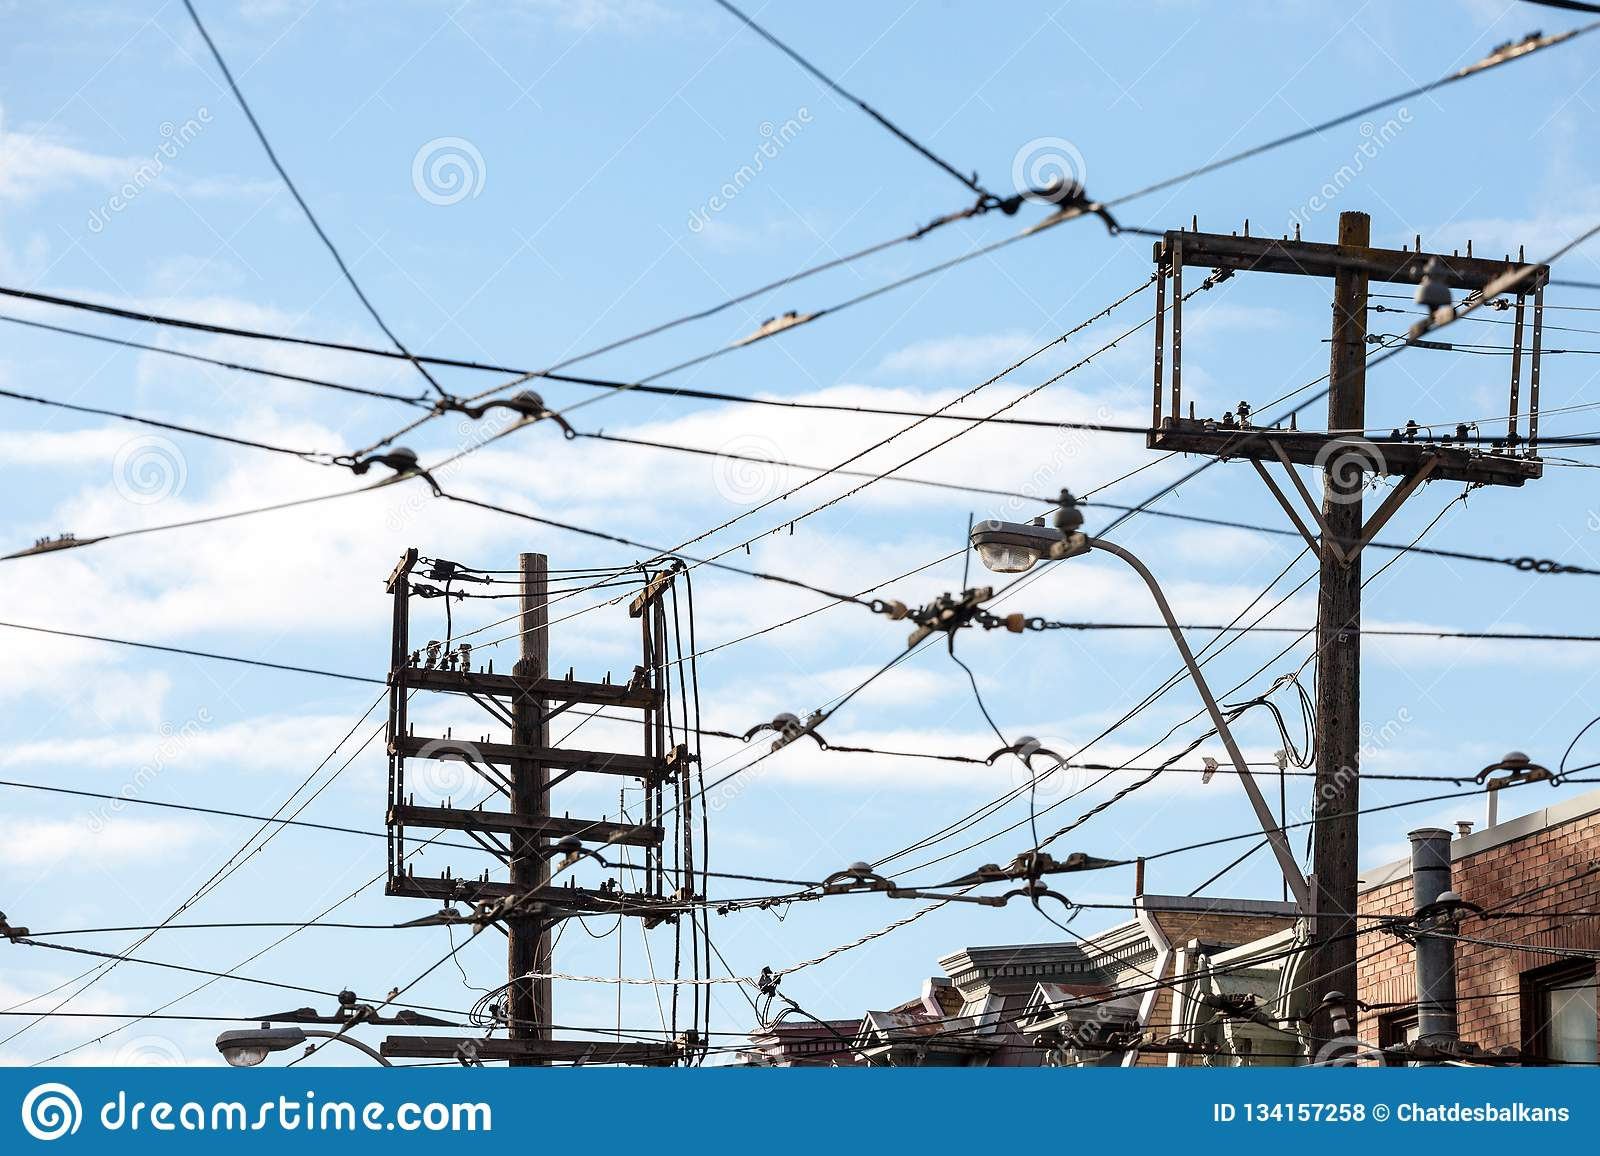 picture of a sky filled with power lines, recent phone and electric cables,  old streetcar lines, all respecting northern america regulations in  downtown